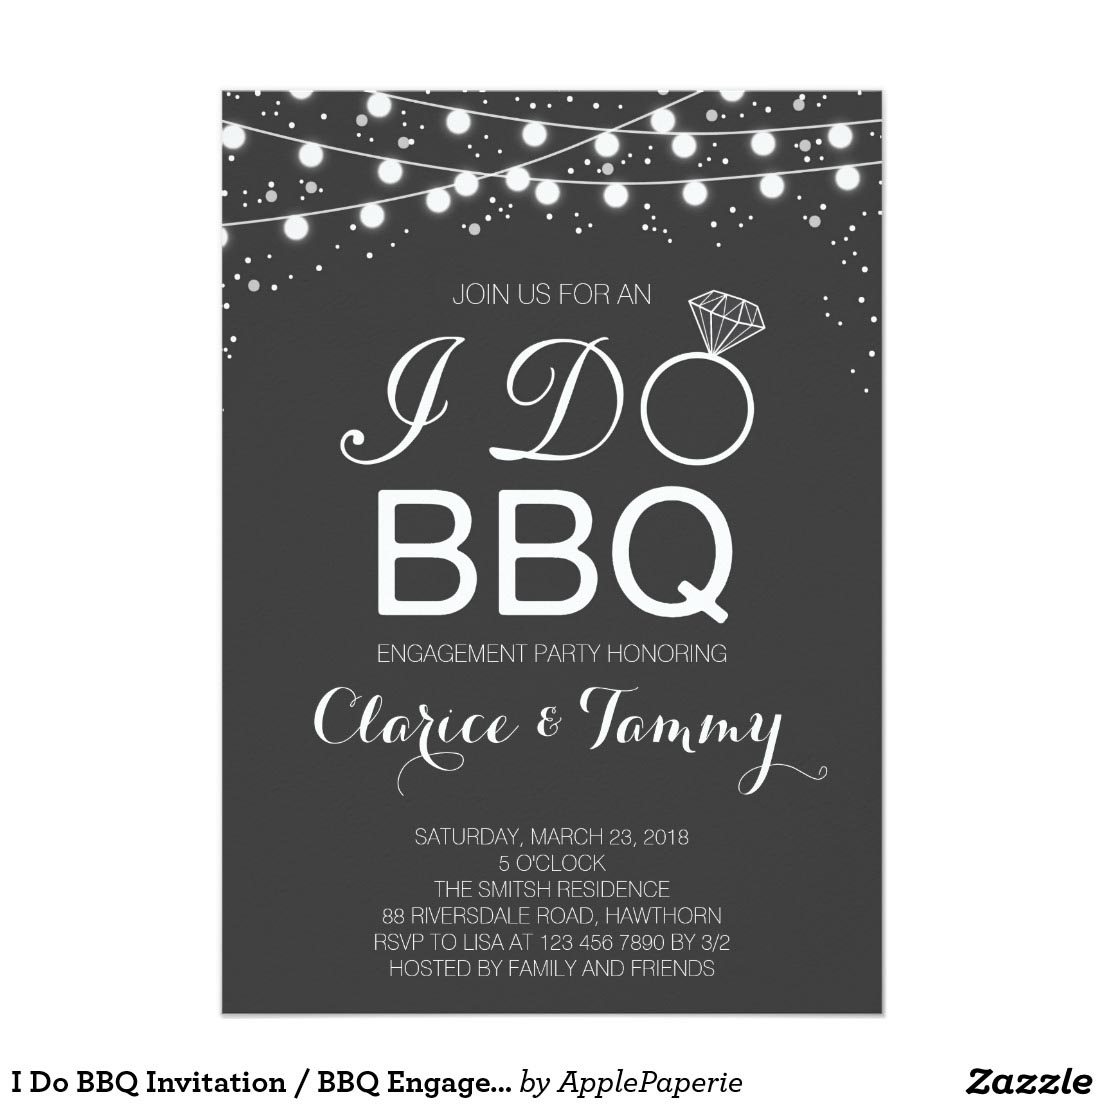 engagement party bbq invitations fire pit design ideas. Black Bedroom Furniture Sets. Home Design Ideas